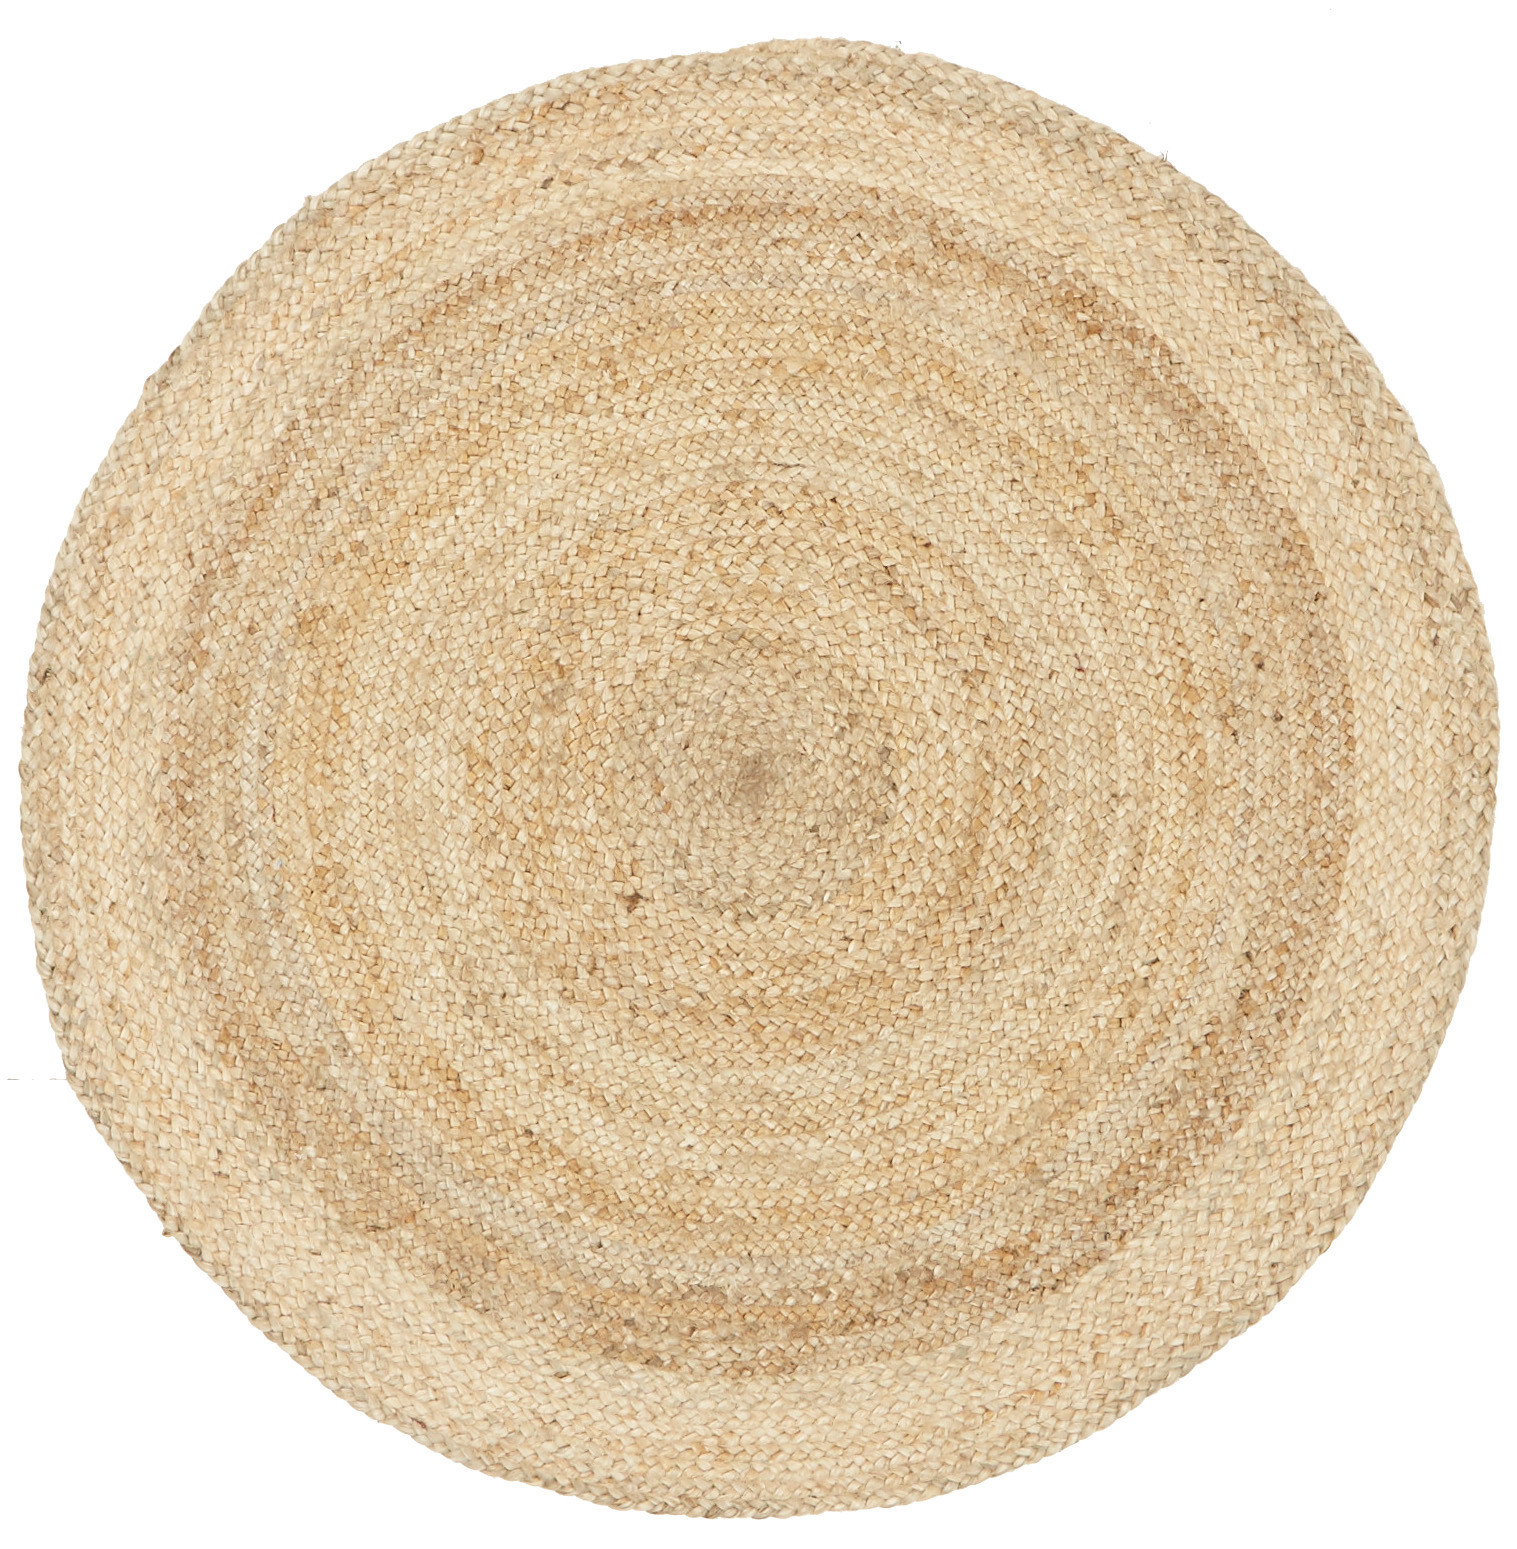 round rugs sku #netw4548 natural round jute rug is also sometimes listed under the HLJWELF